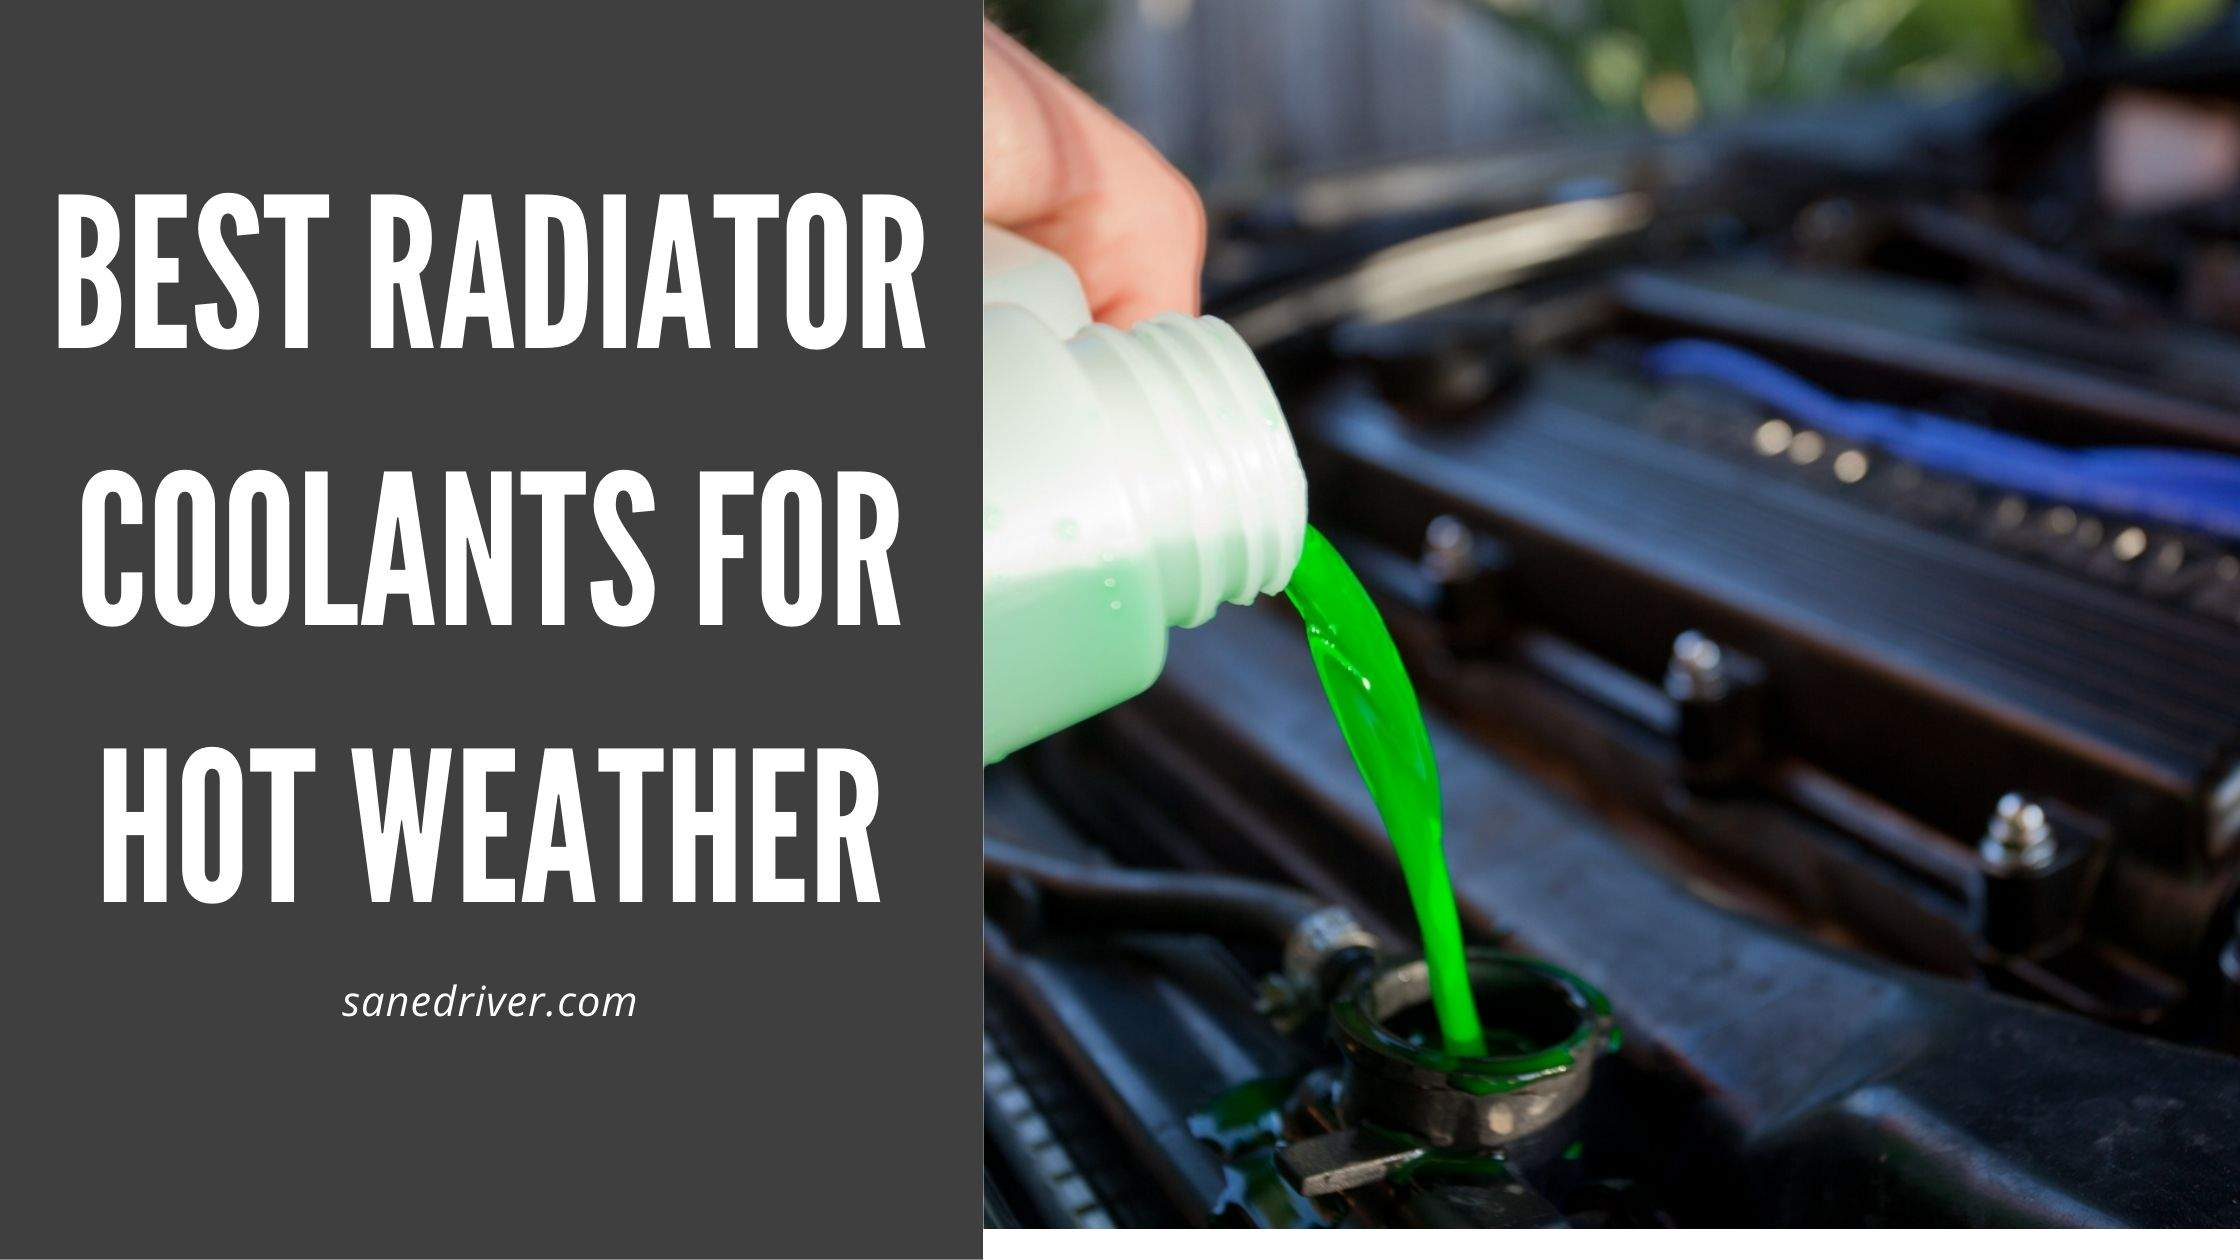 best radiator coolants for hot weather